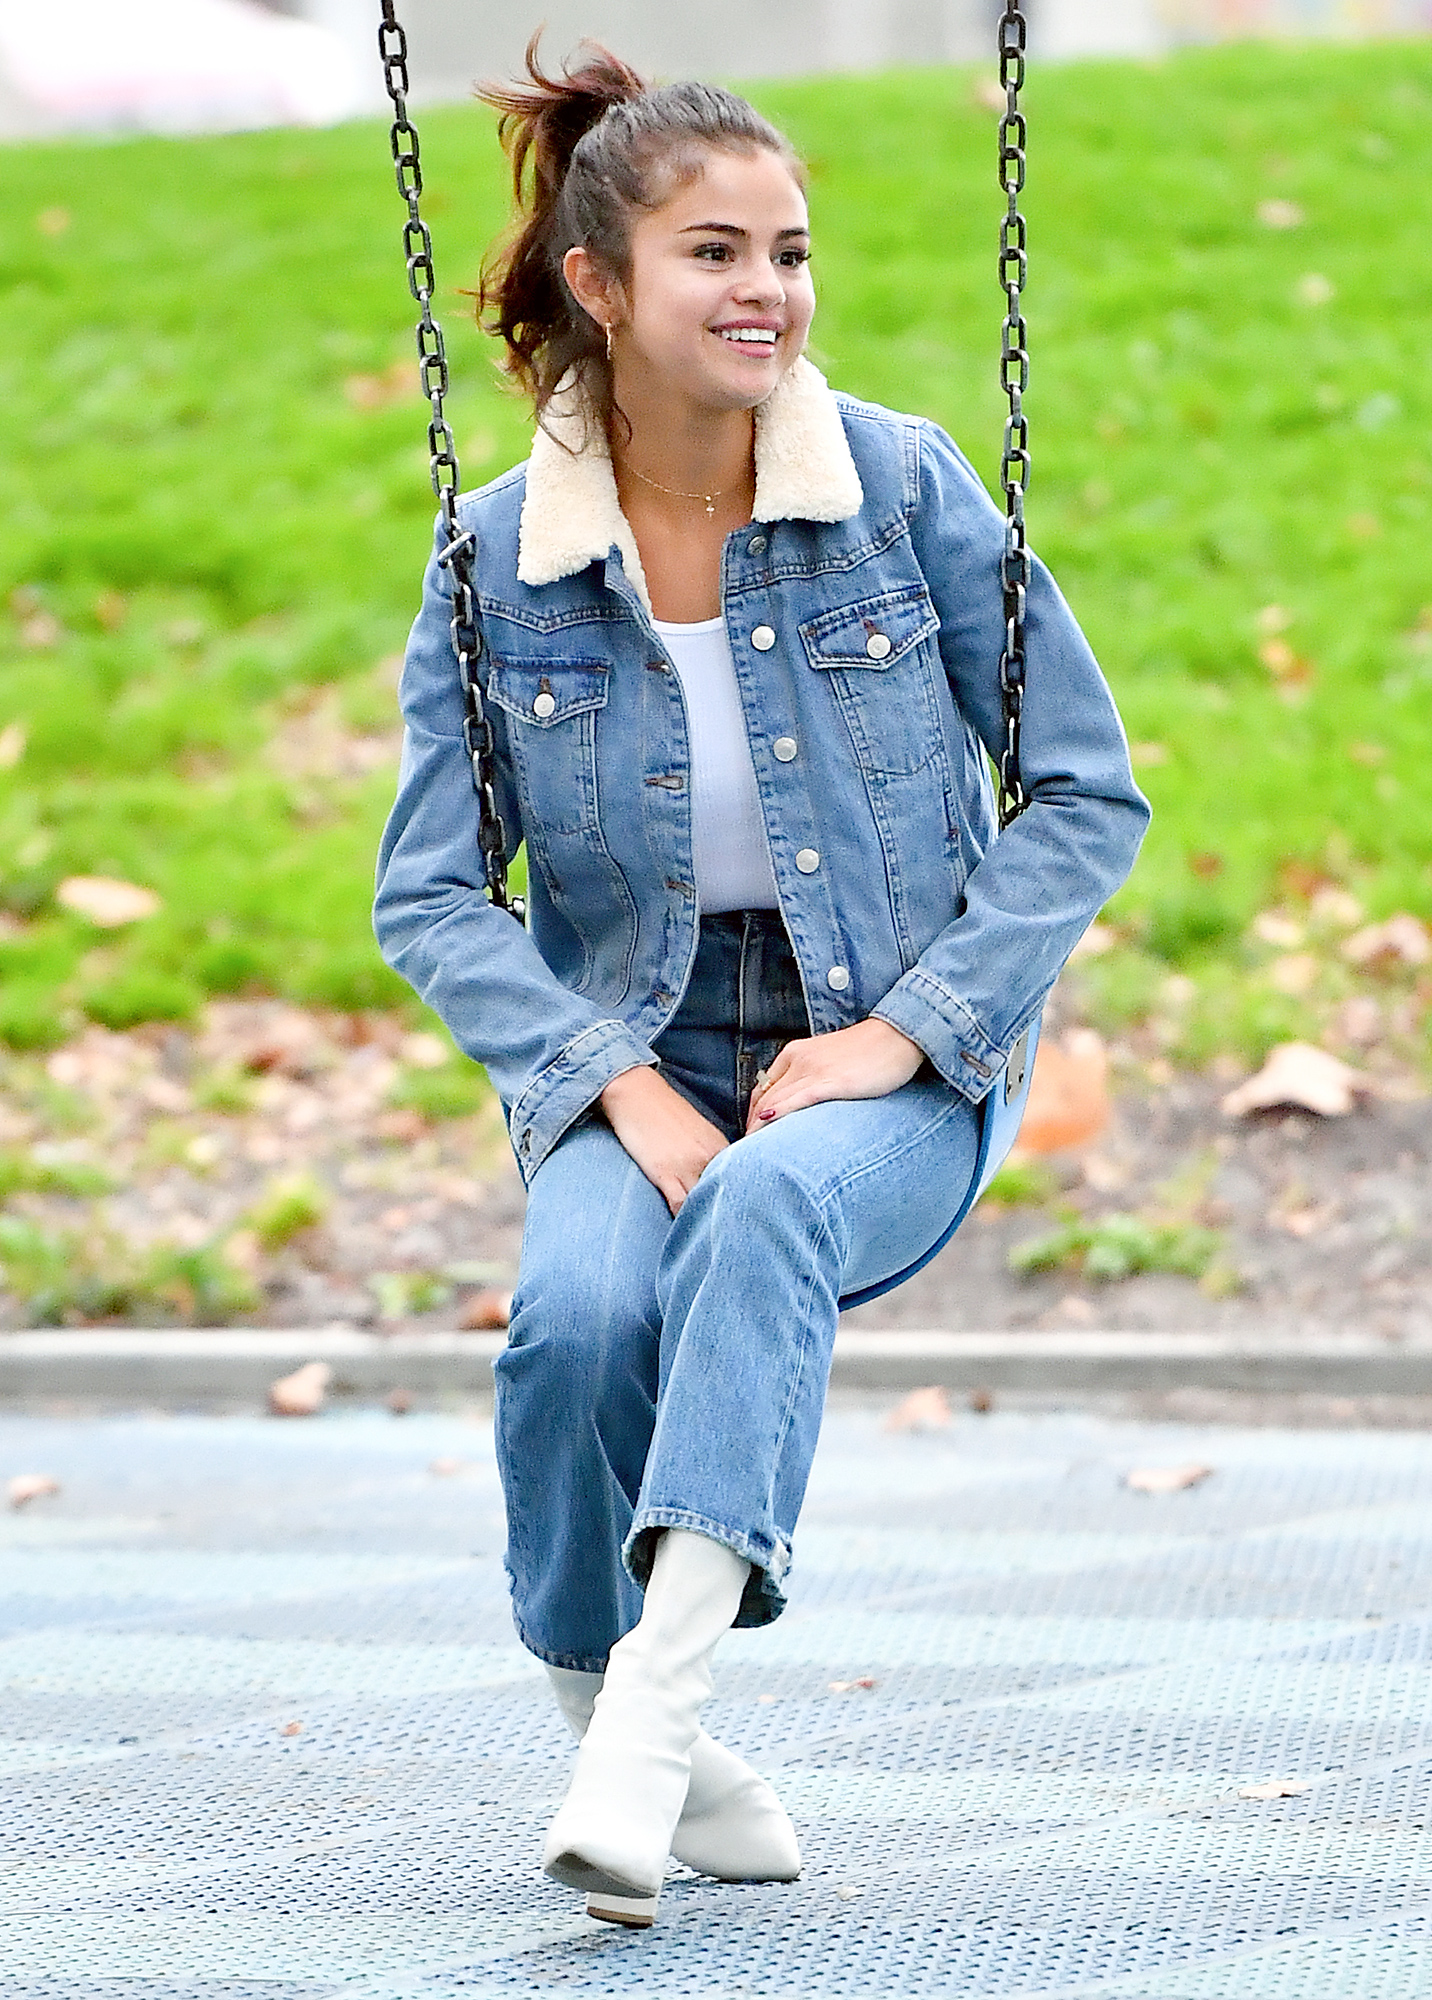 Selena Gomez looks incredibly happy while on the swings at a local park in Burbank